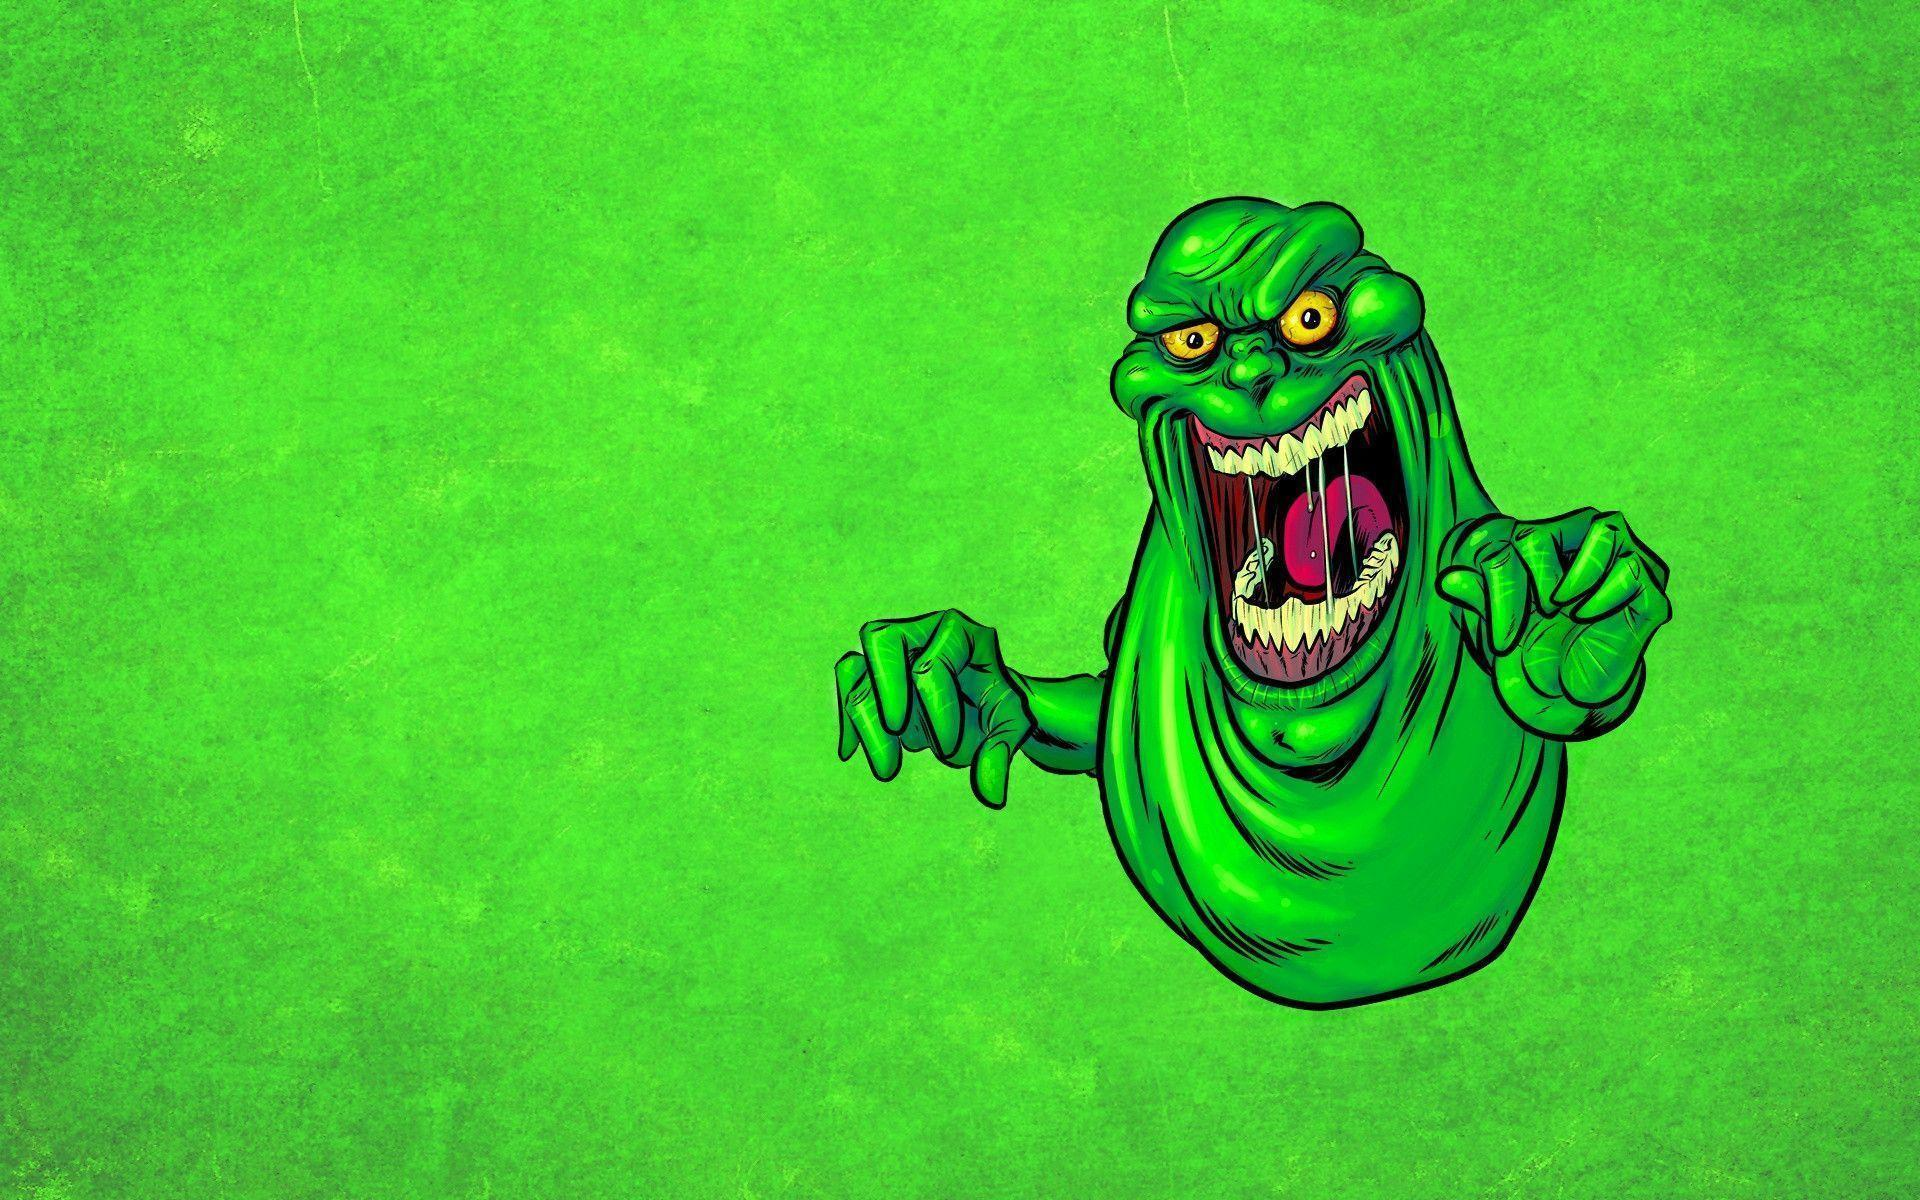 ecto 1 ghostbusters wallpaper - photo #33